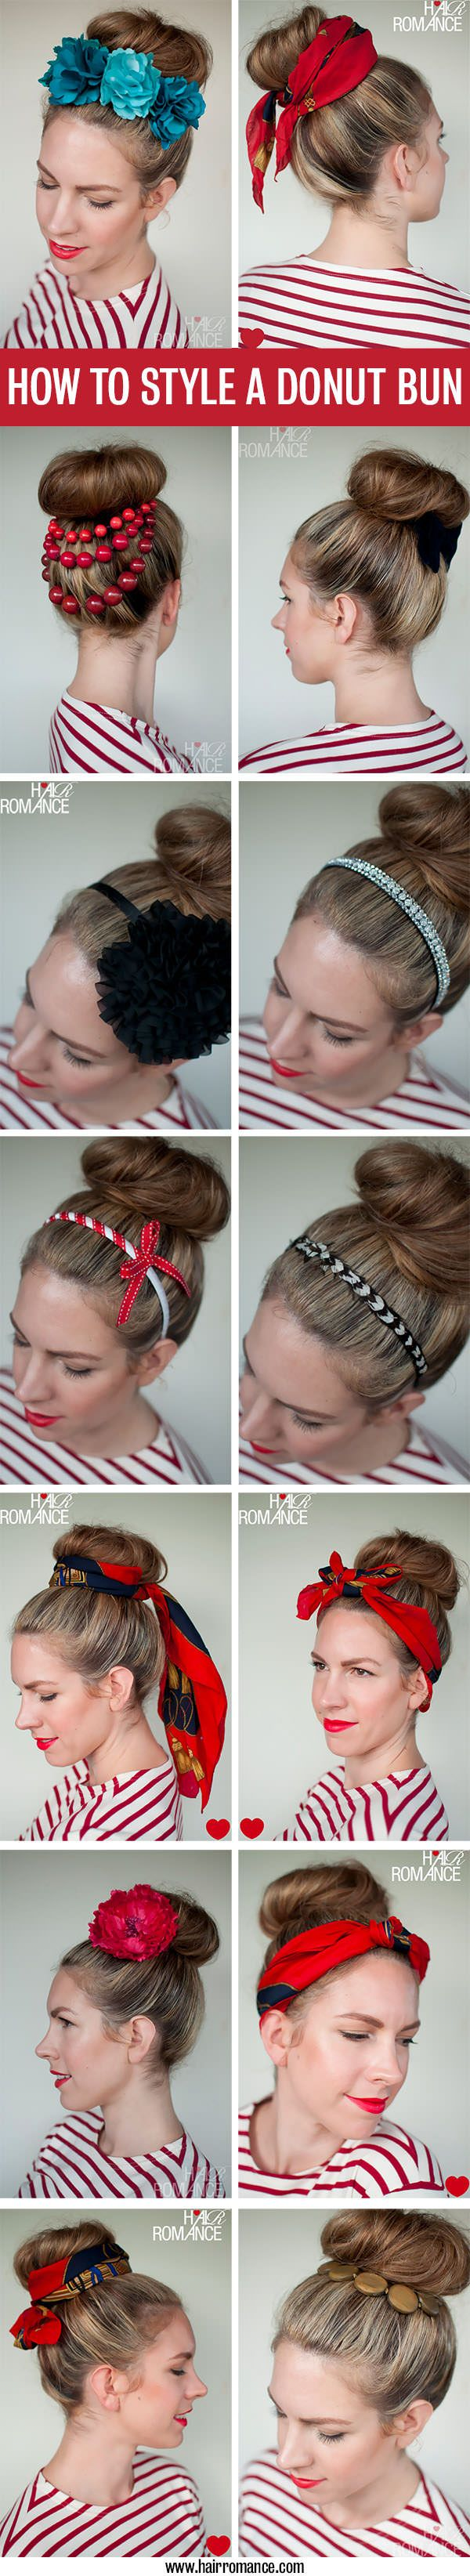 Hairstyle | 15 Ways to Accessorize a Donut Bun